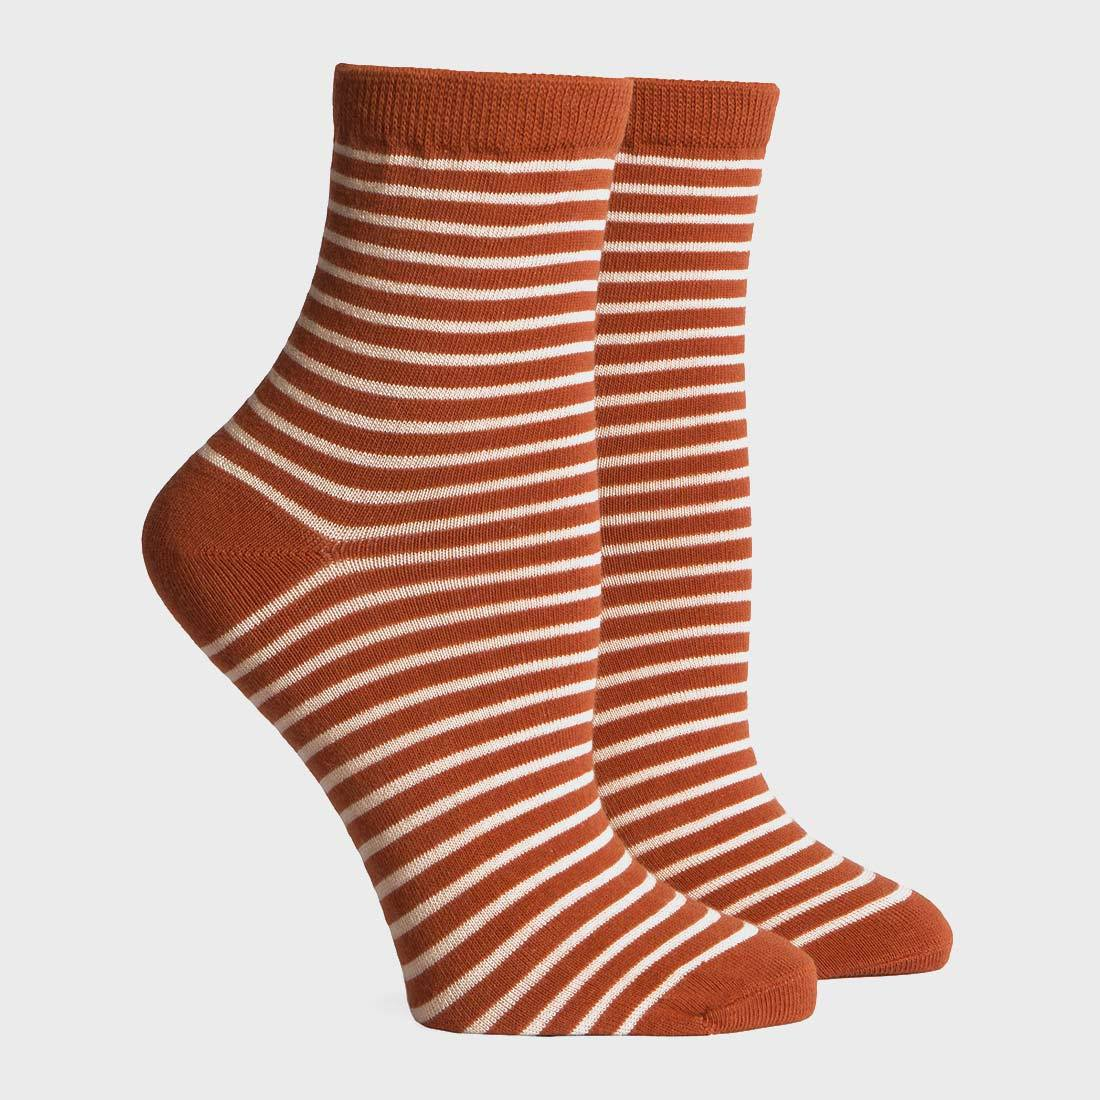 Richer Poorer Women's Skimmer Socks Ivory Orange